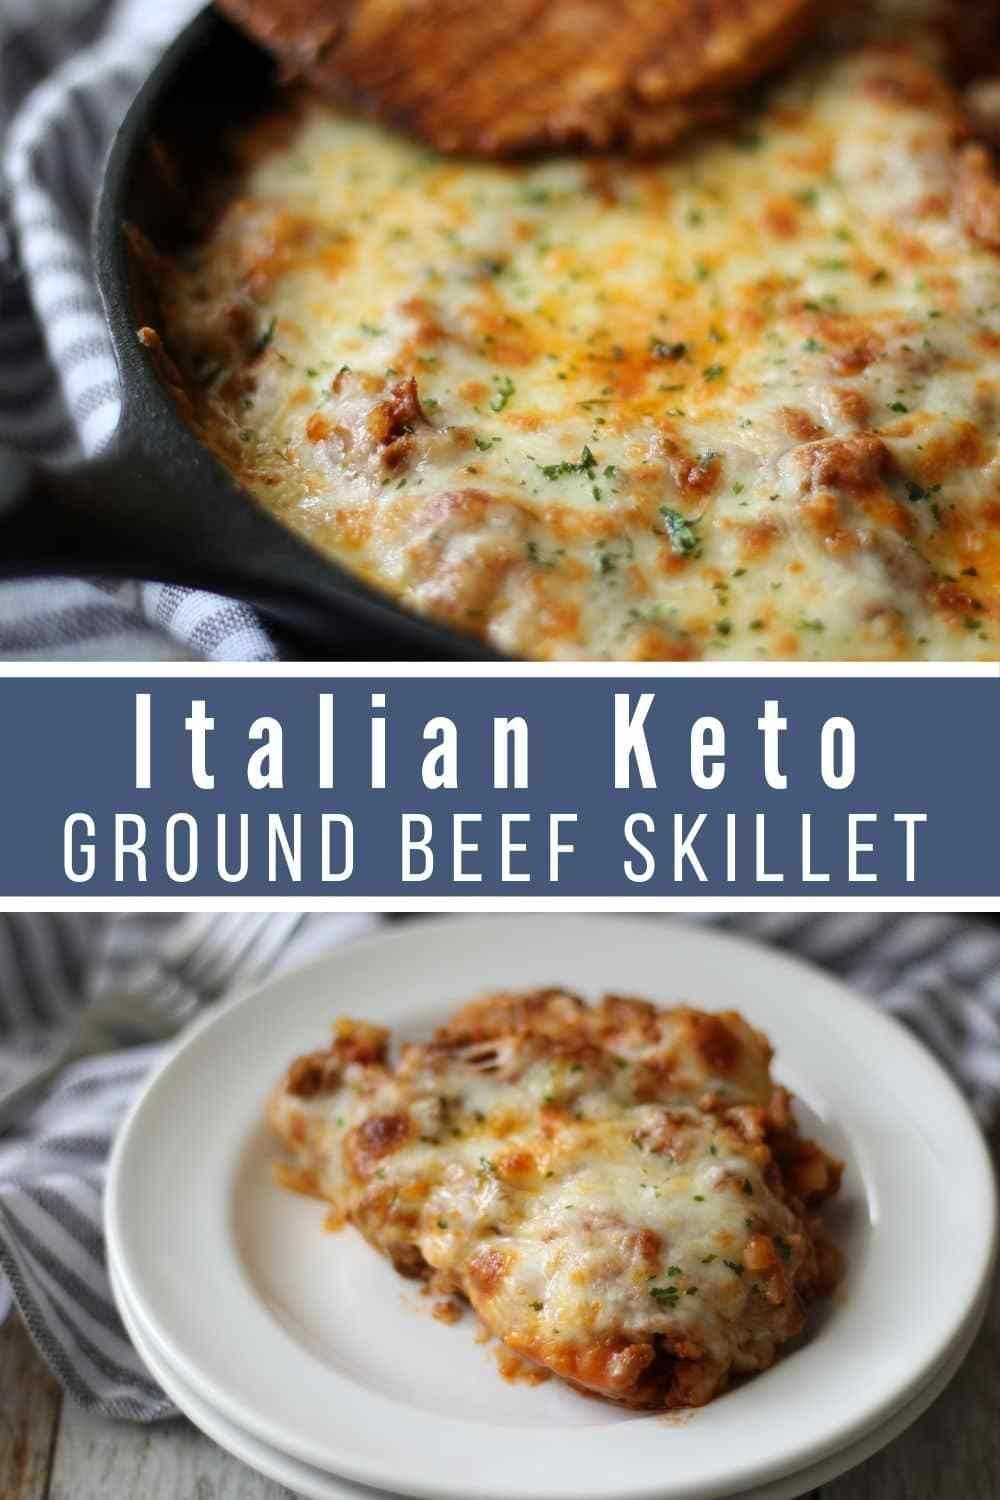 Low Carb Ground Beef Recipe: Italian Keto Beef Skillet